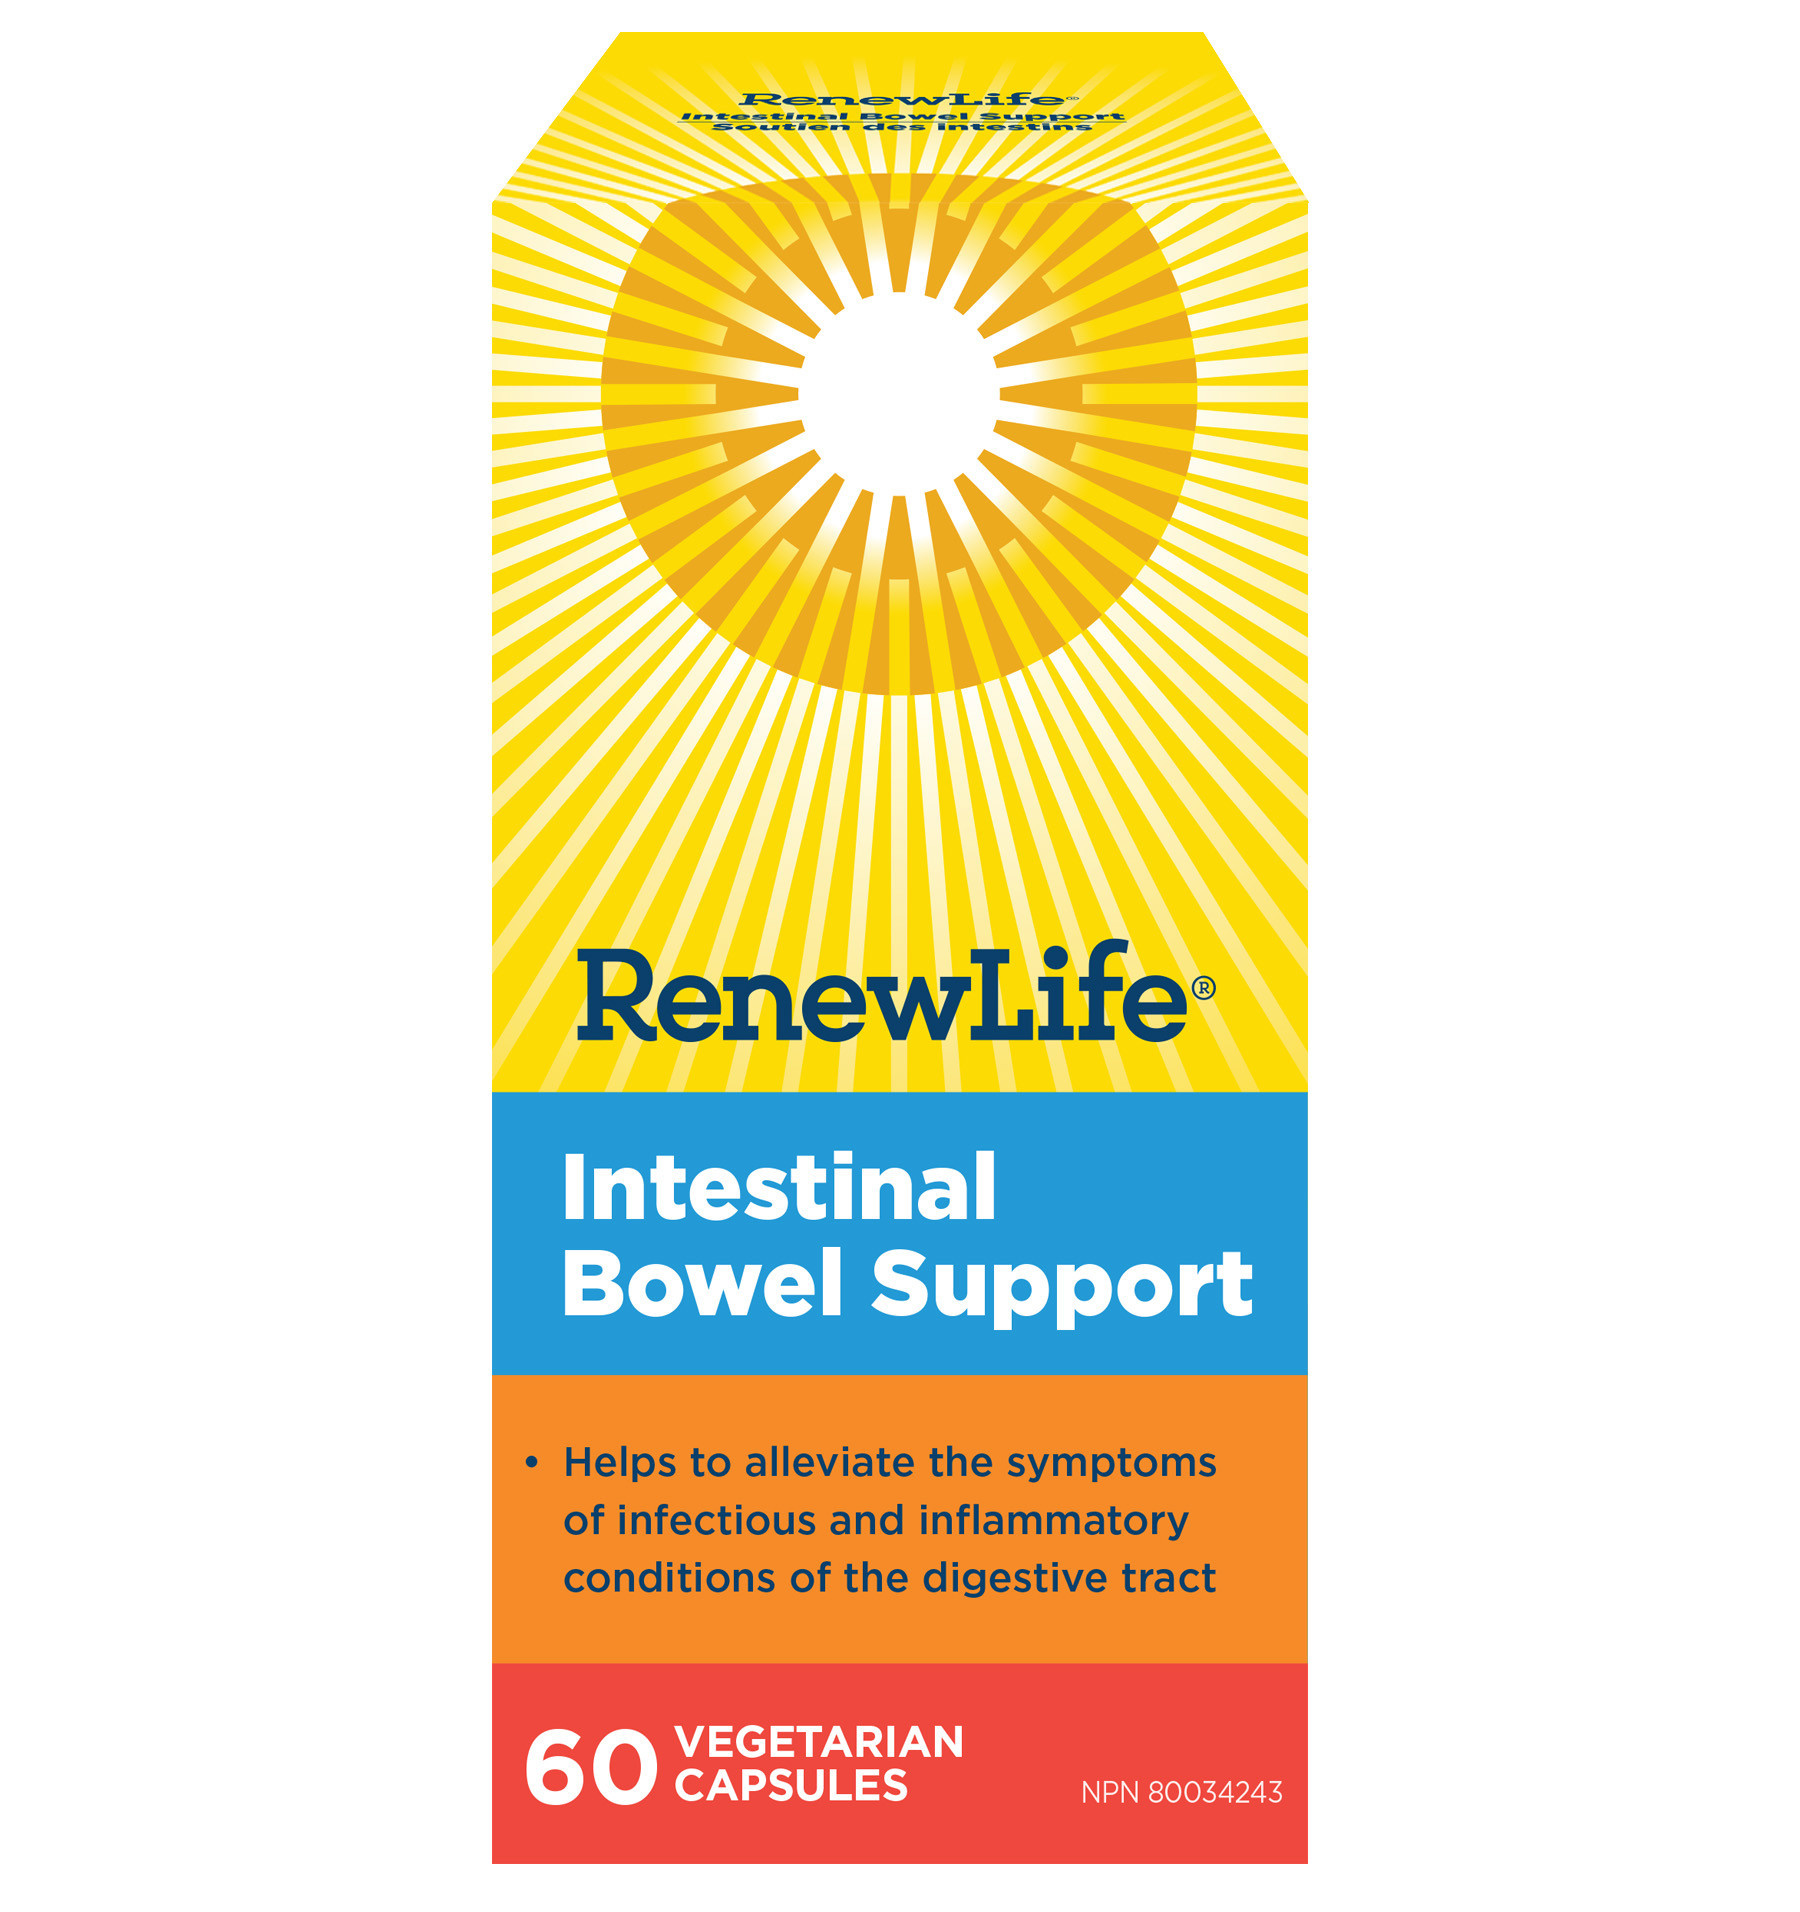 Renew Life Renew Life - Intestinal Bowel Support - 60 V-Caps